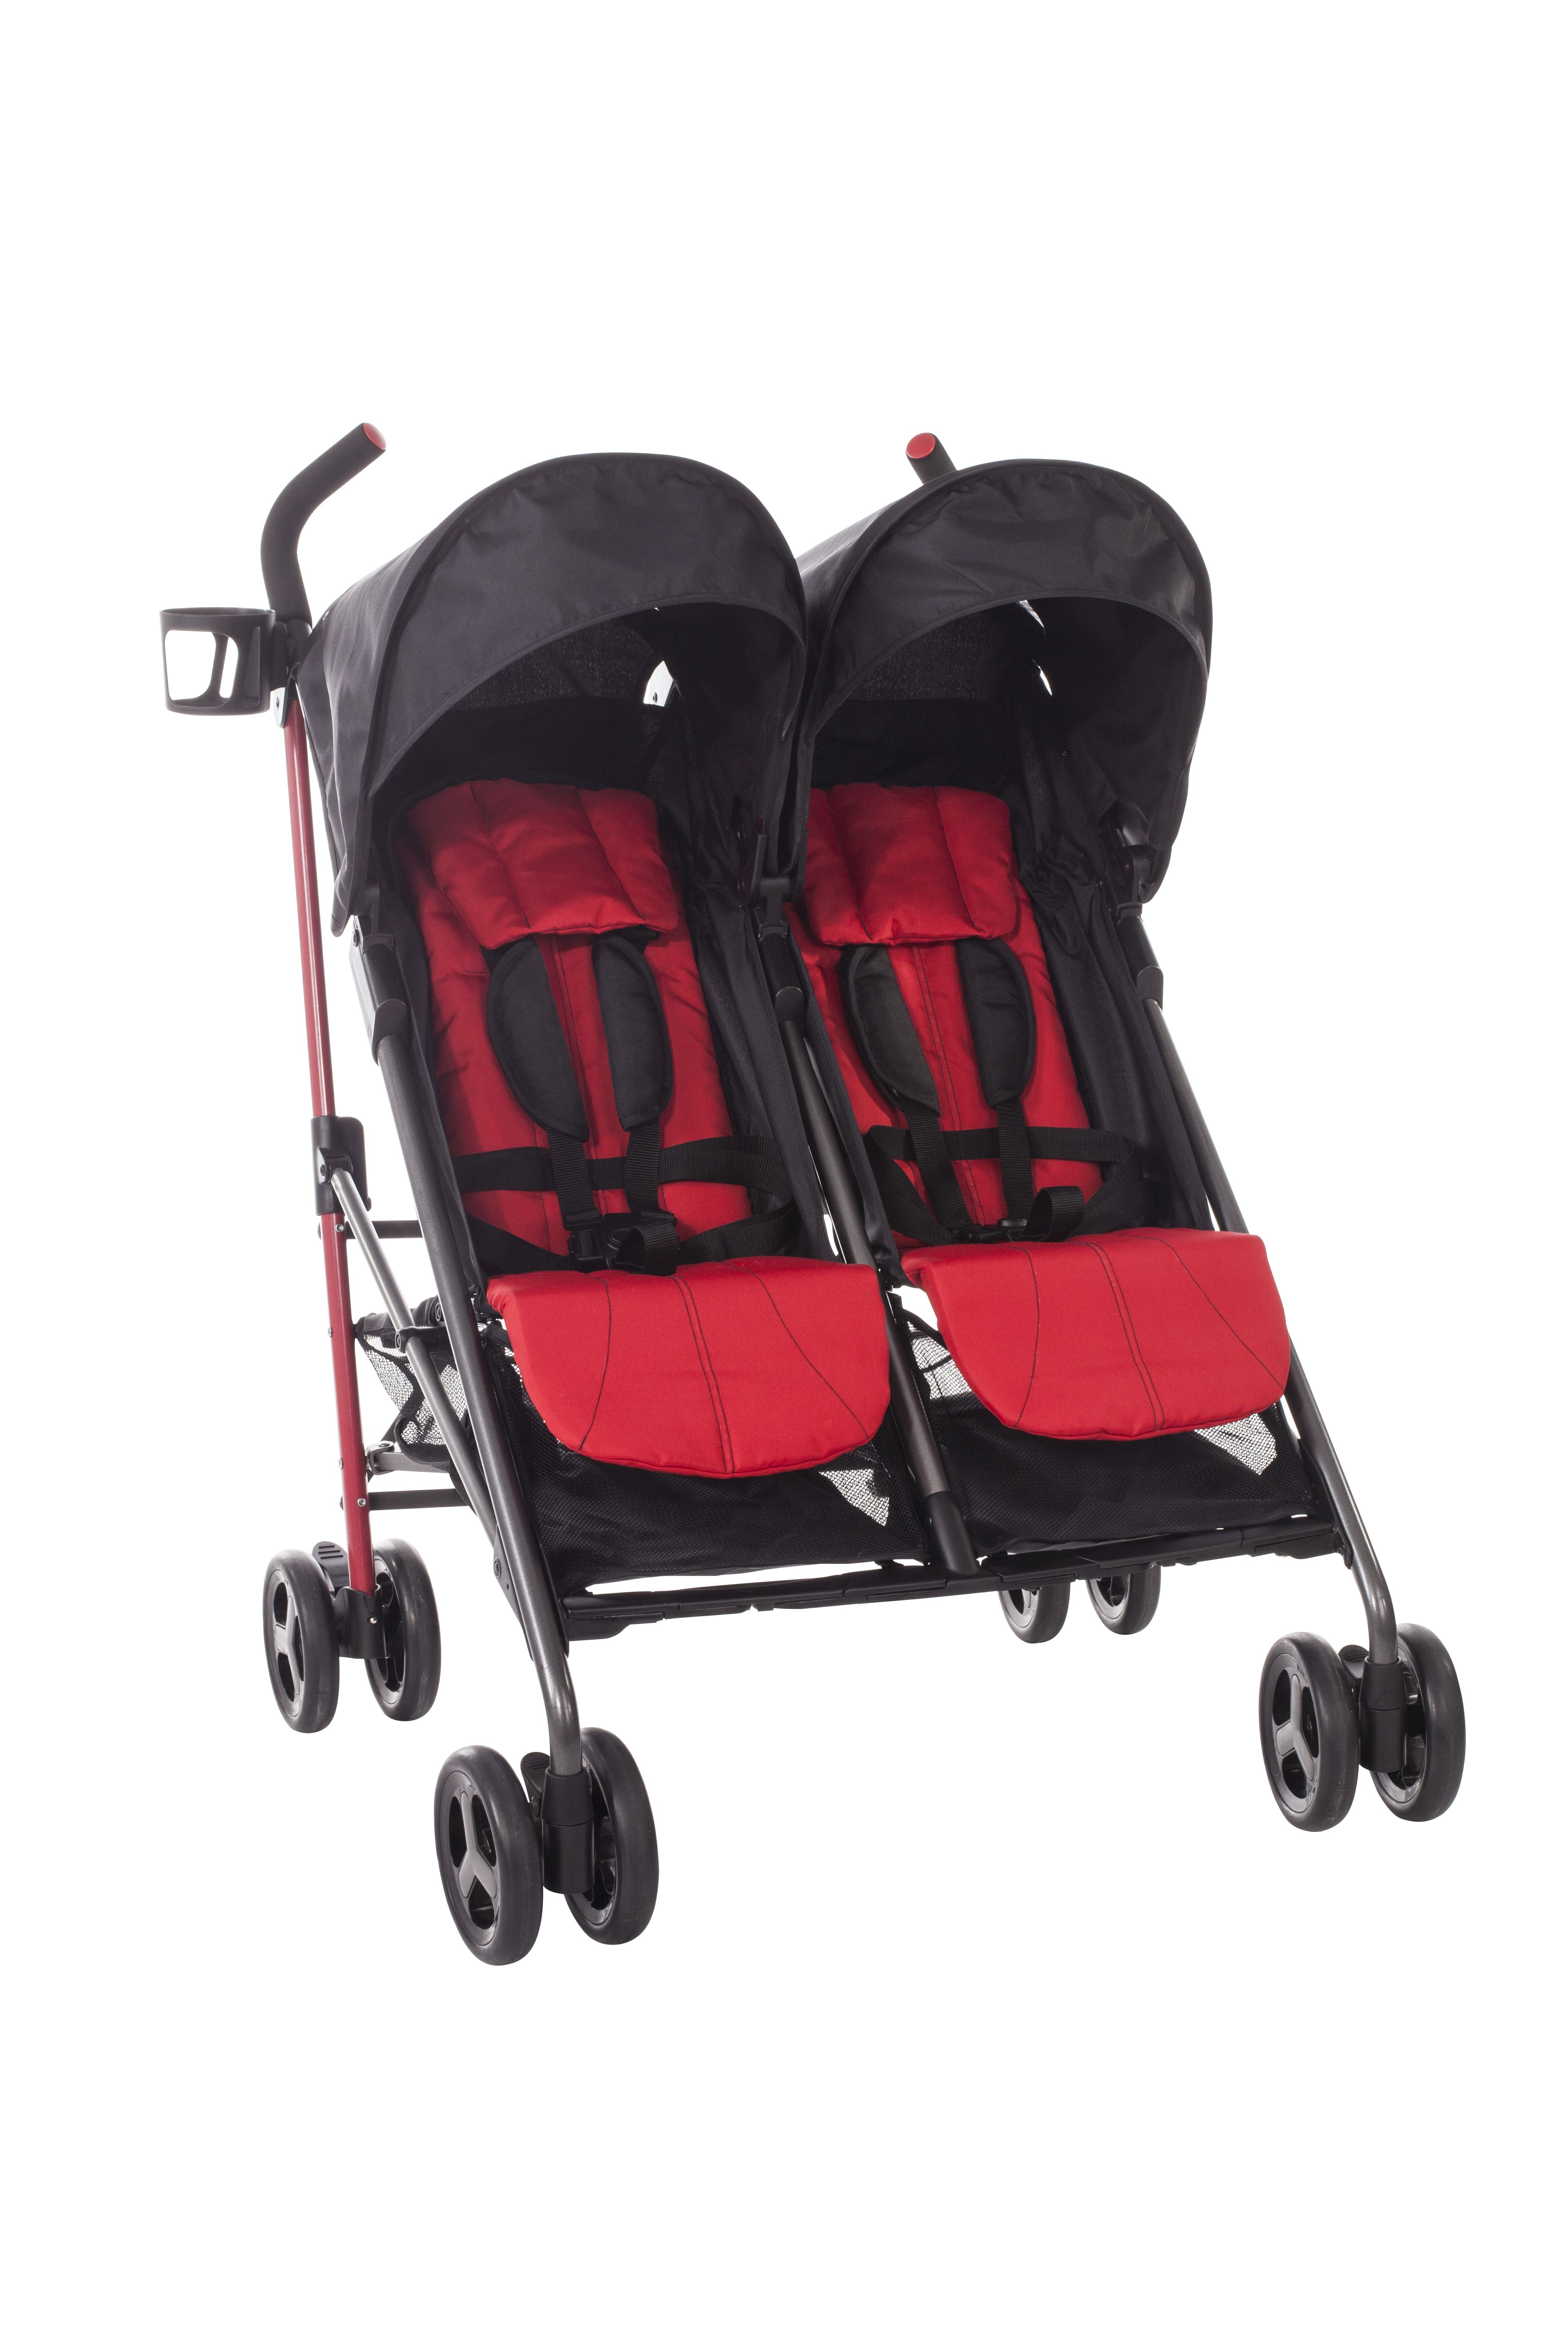 Babies R Us Zobo 2x Side By Side Stroller, Cherry Reviews 2021